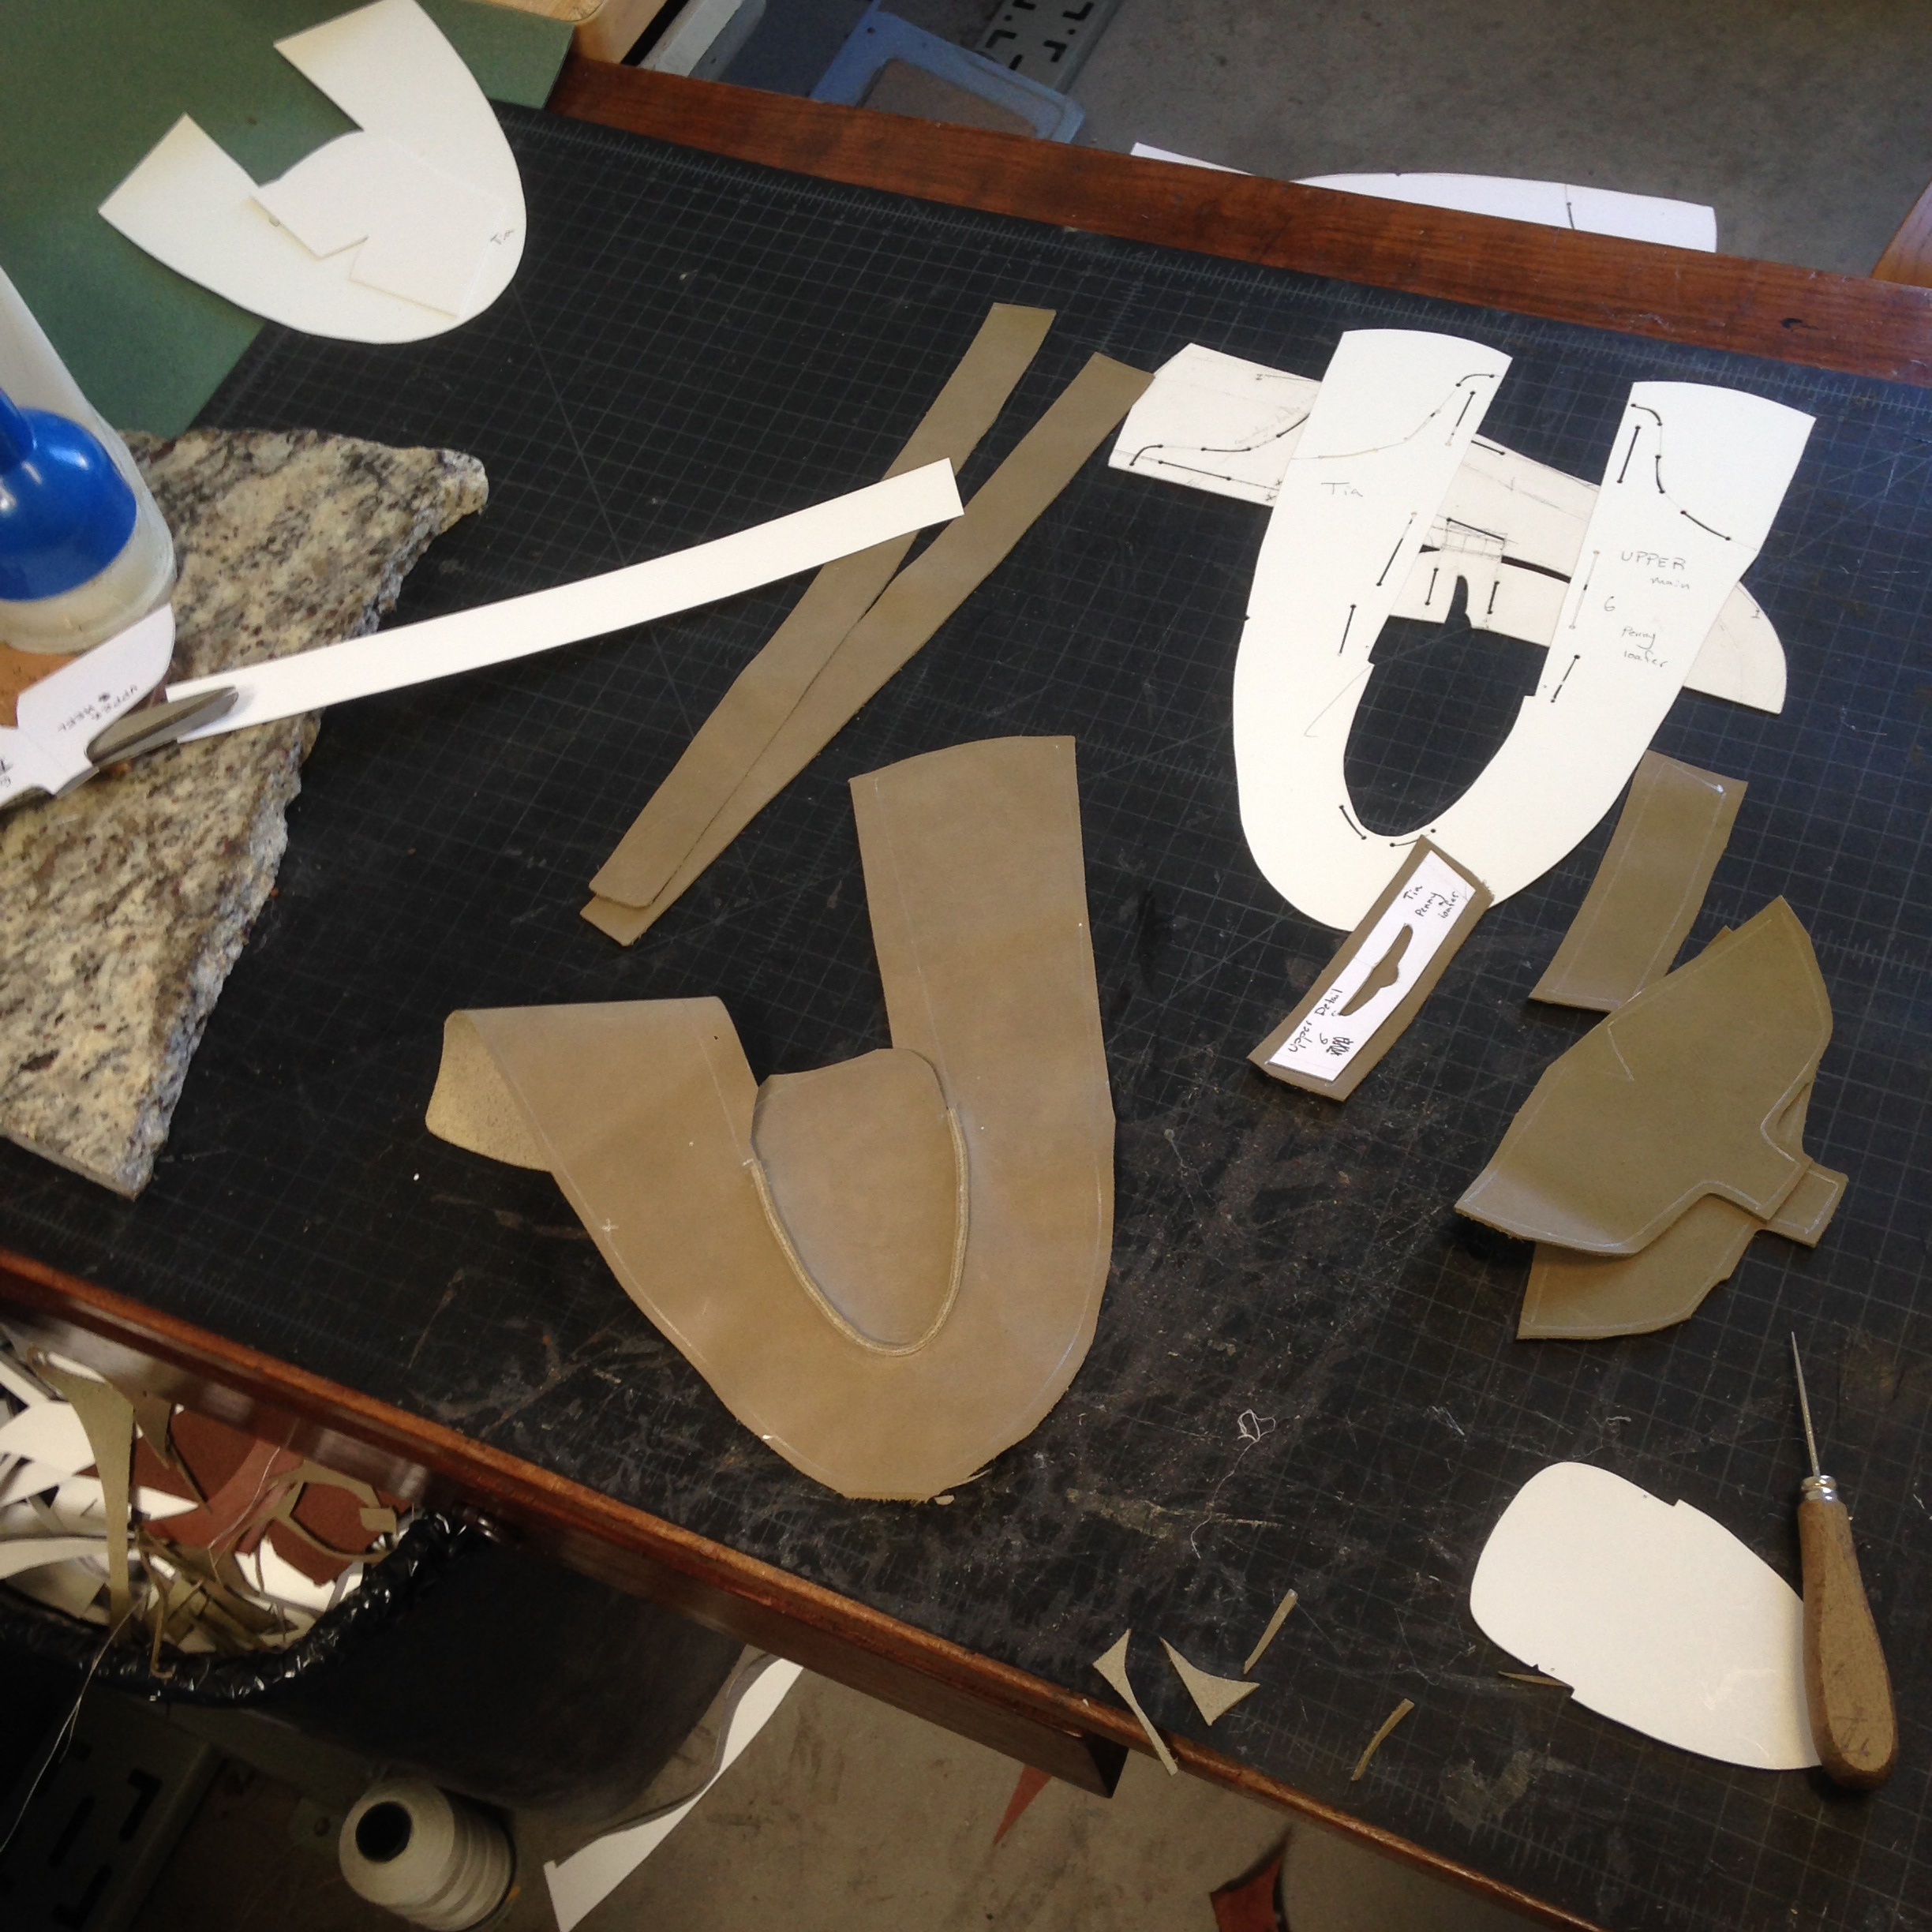 Cutting and stitching uppers